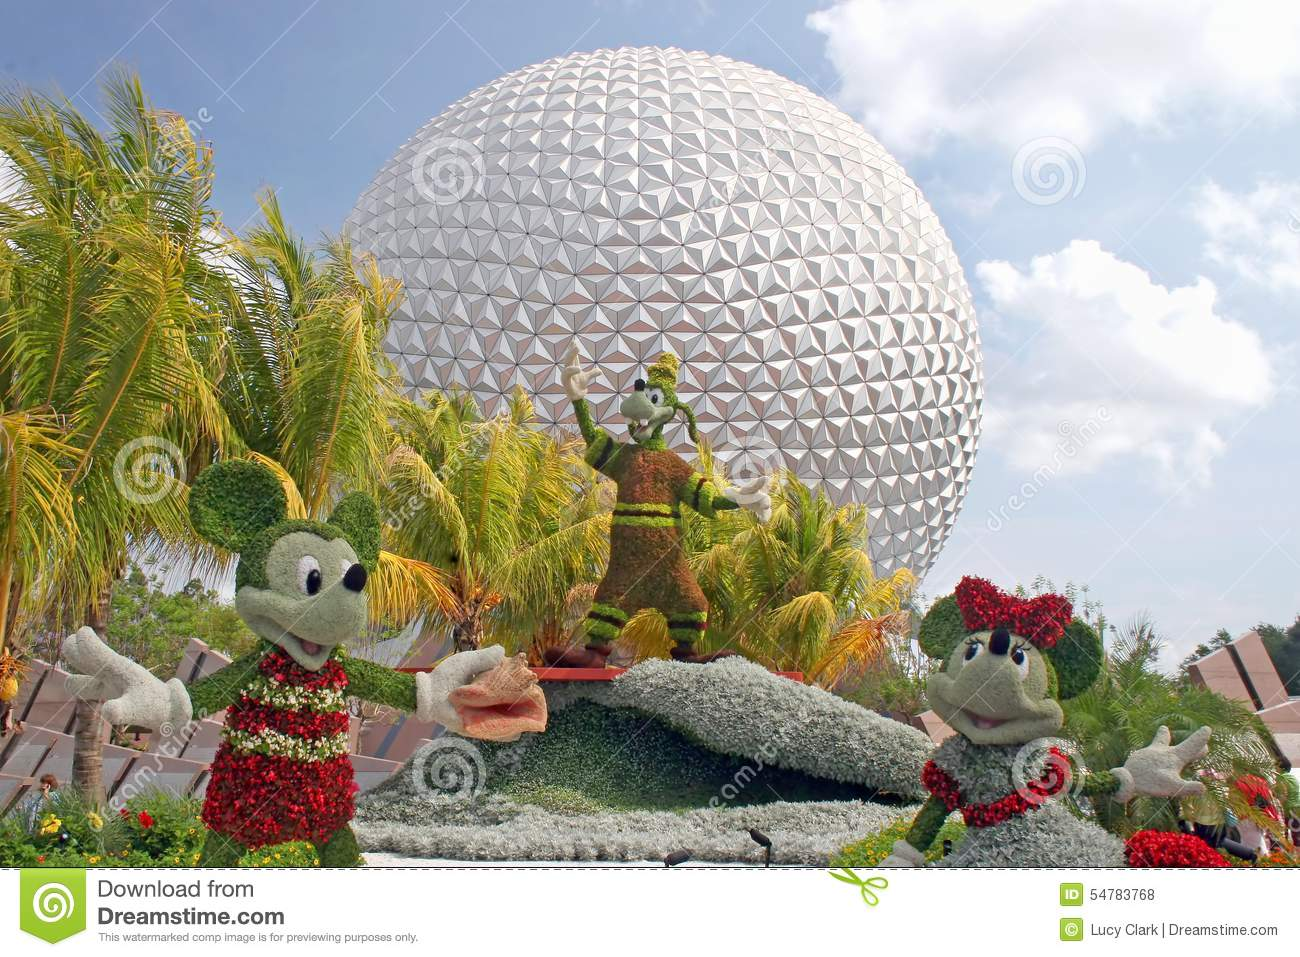 Epcot Flower And Garden Festival Editorial Stock Photo - Image of